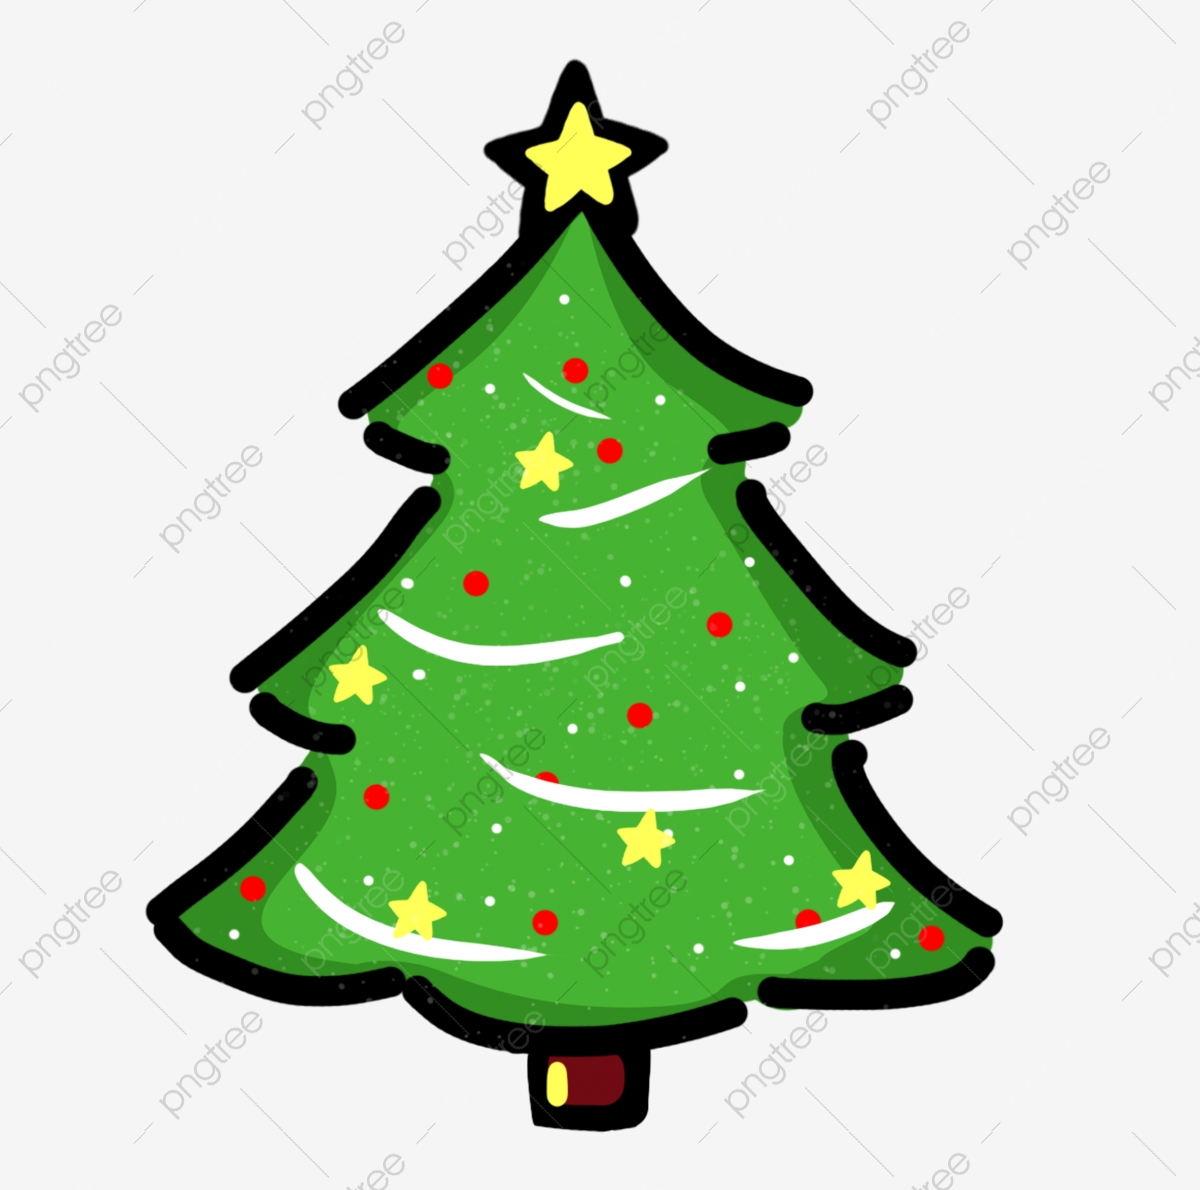 cartoon christmas tree png images vector and psd files free download on pngtree https pngtree com freepng christmas cute cartoon christmas tree christmas tree christmas hand drawn christmas tree green christmas tree 3818979 html